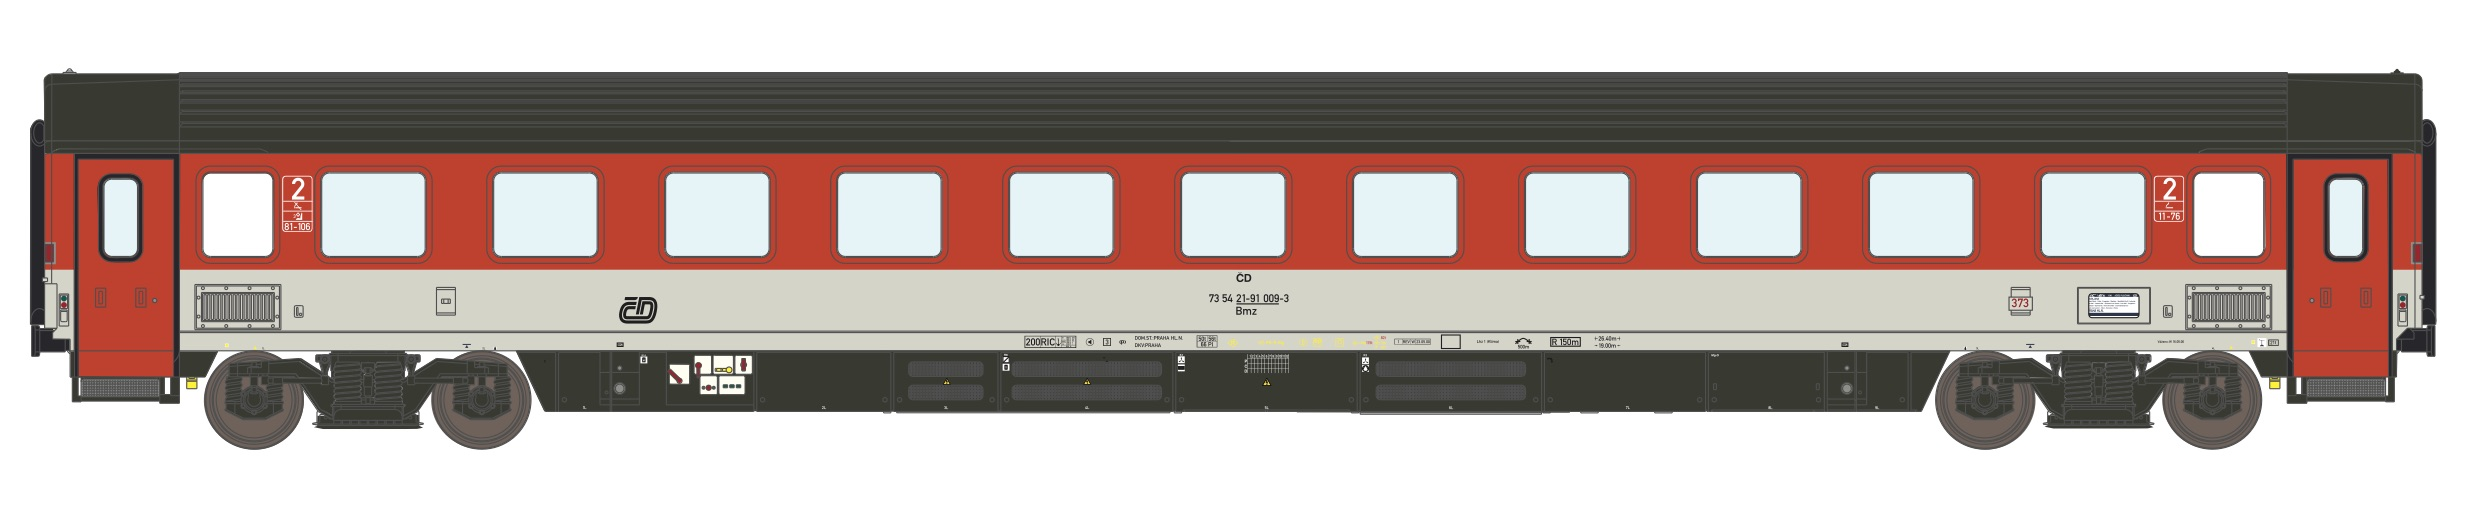 195434: EuroCity compartment car 2. class, type Bmz 245 of the Czech Railways CD